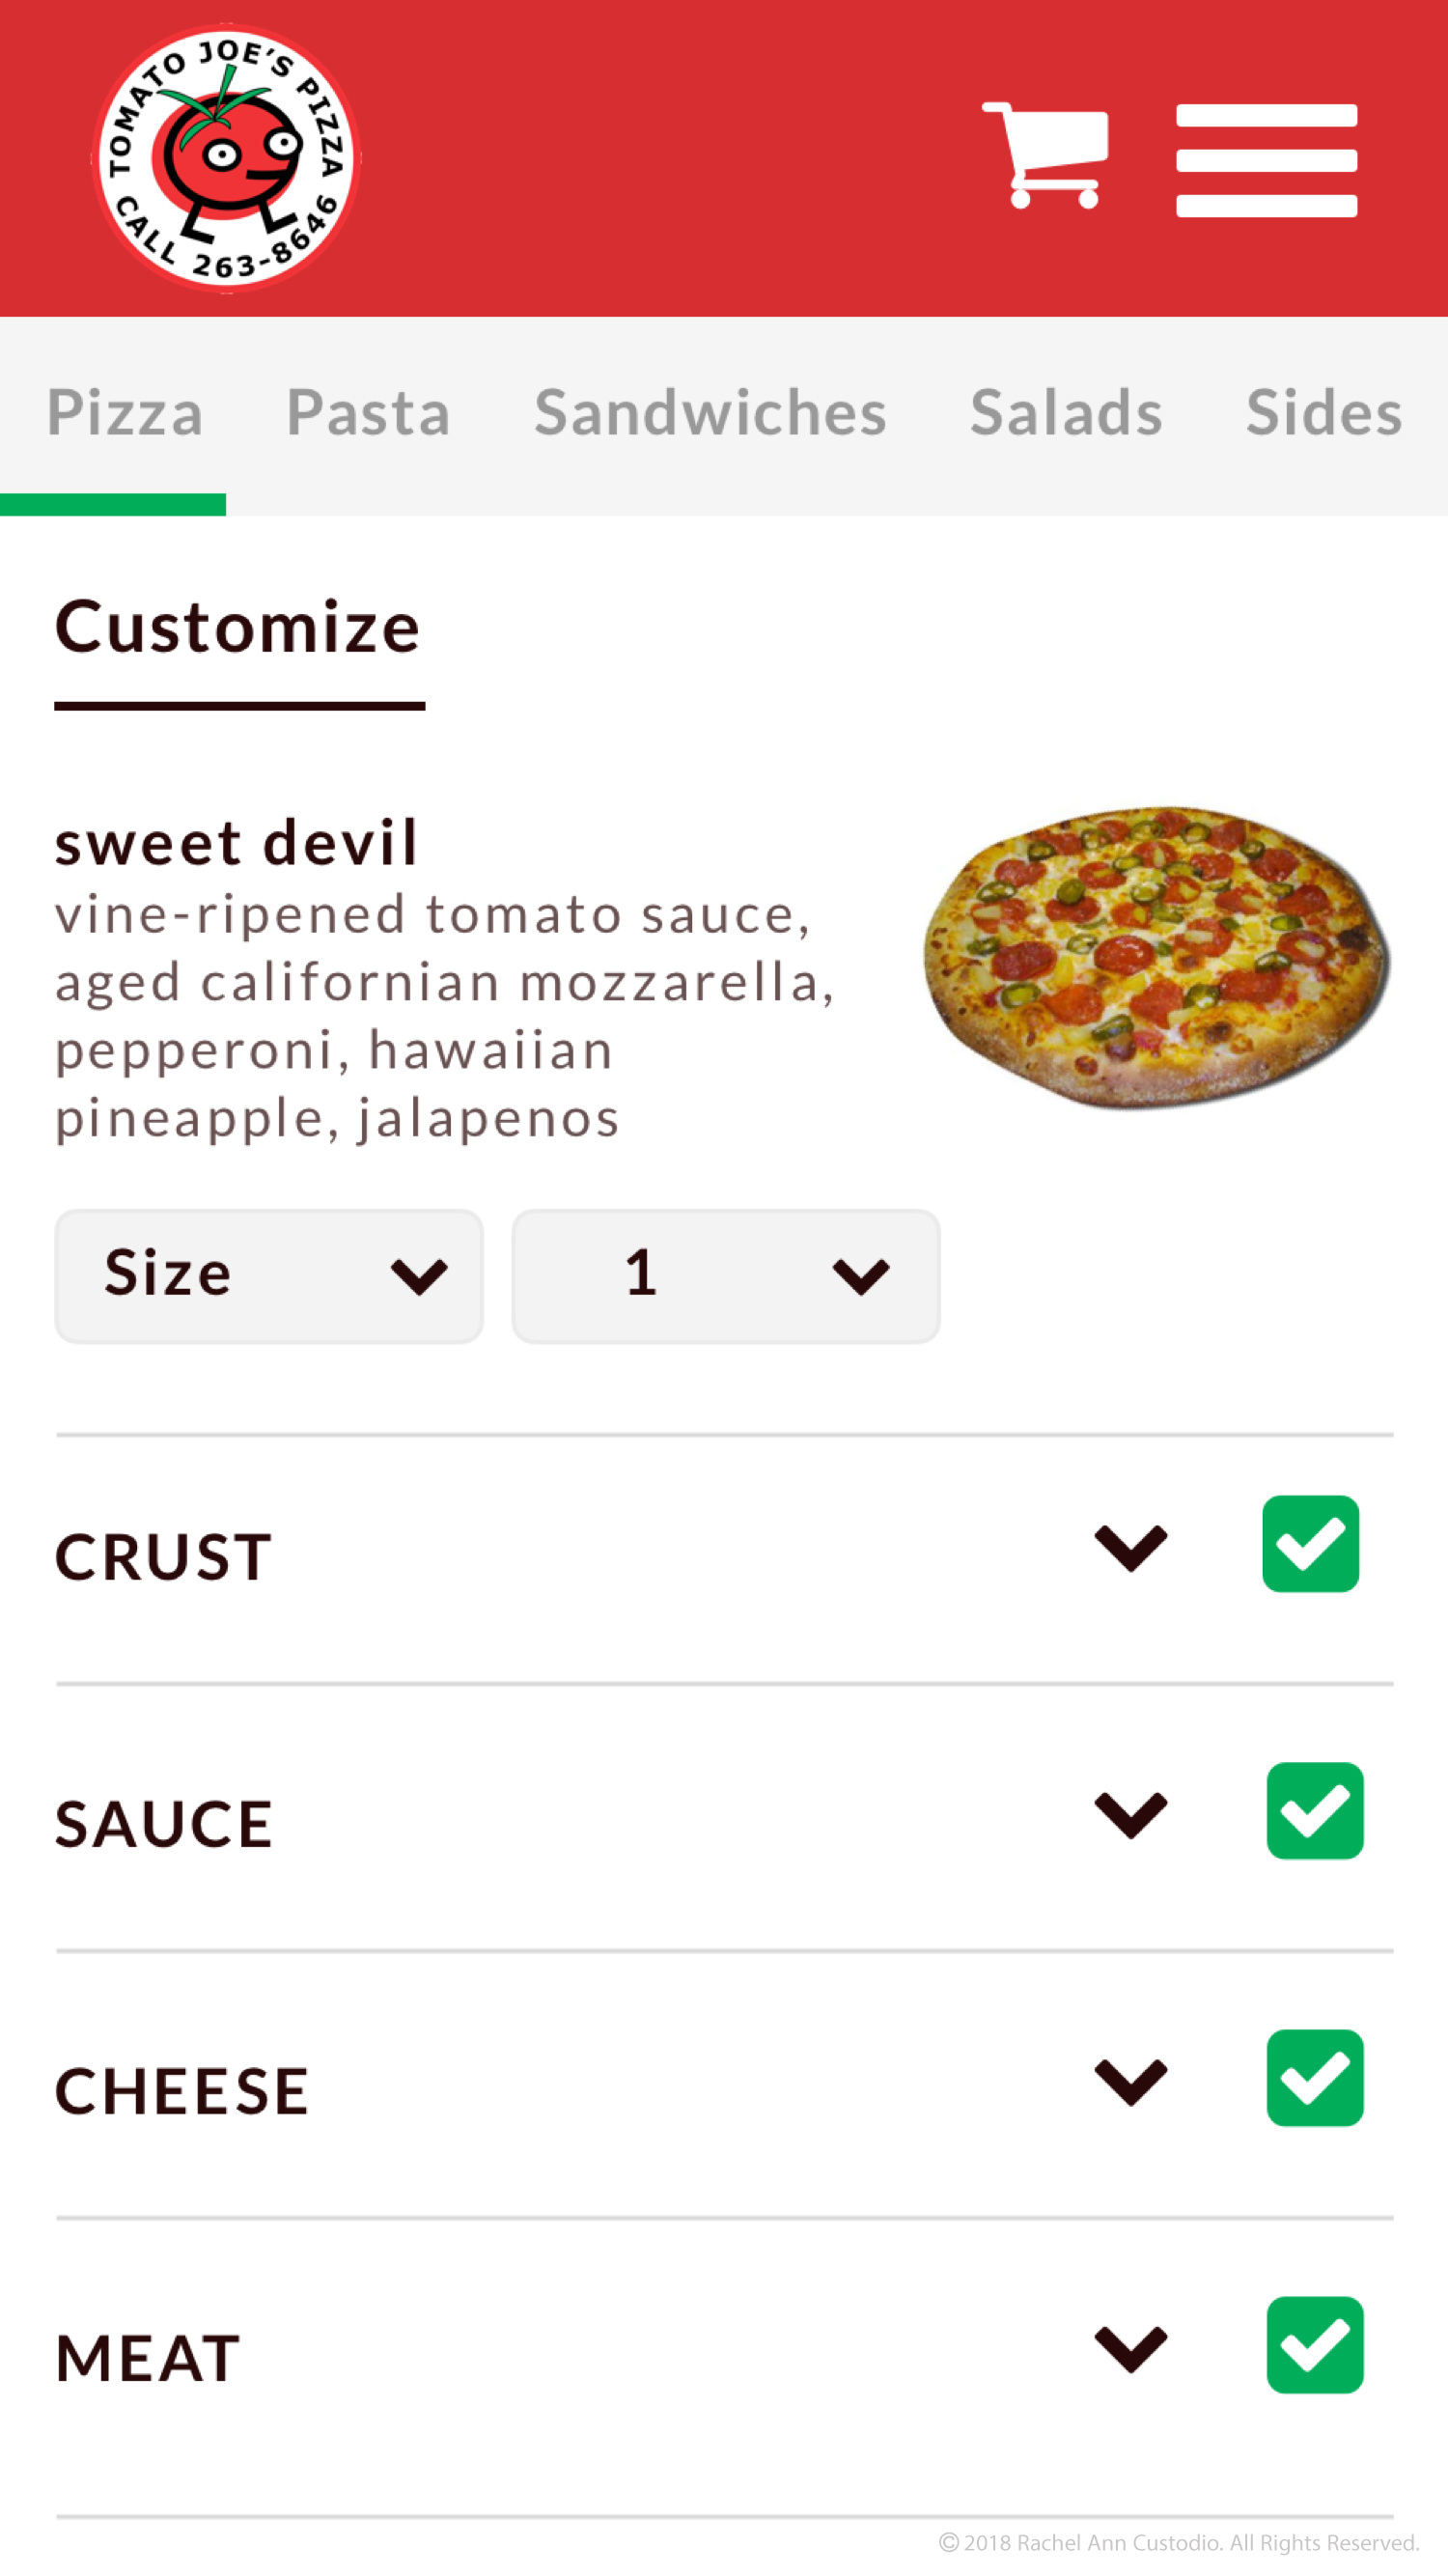 Pizza Custom Menu Design